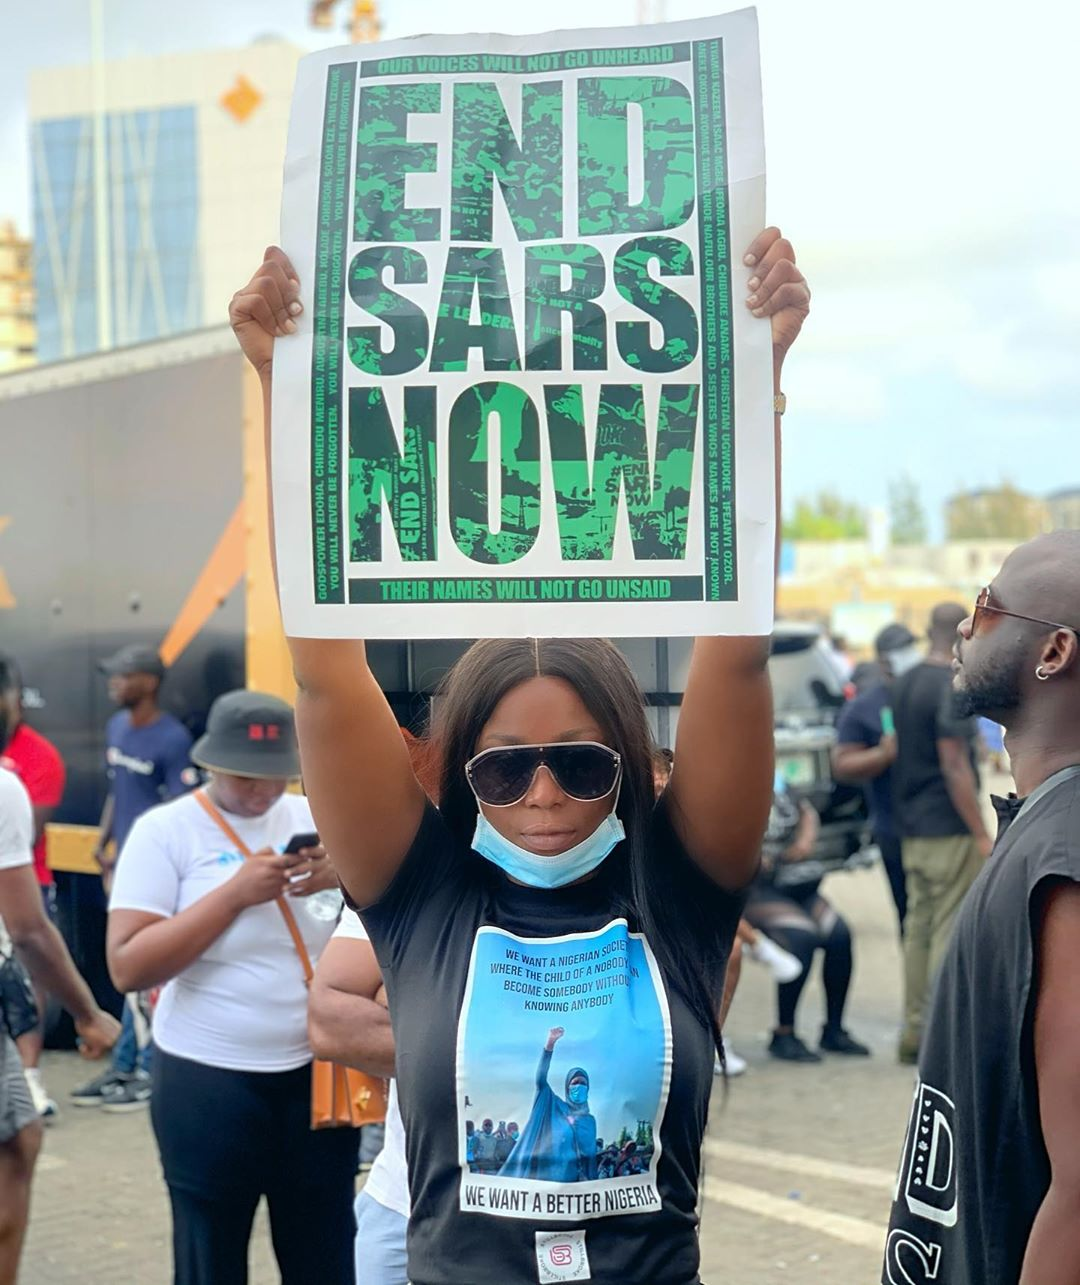 END SARS NOW